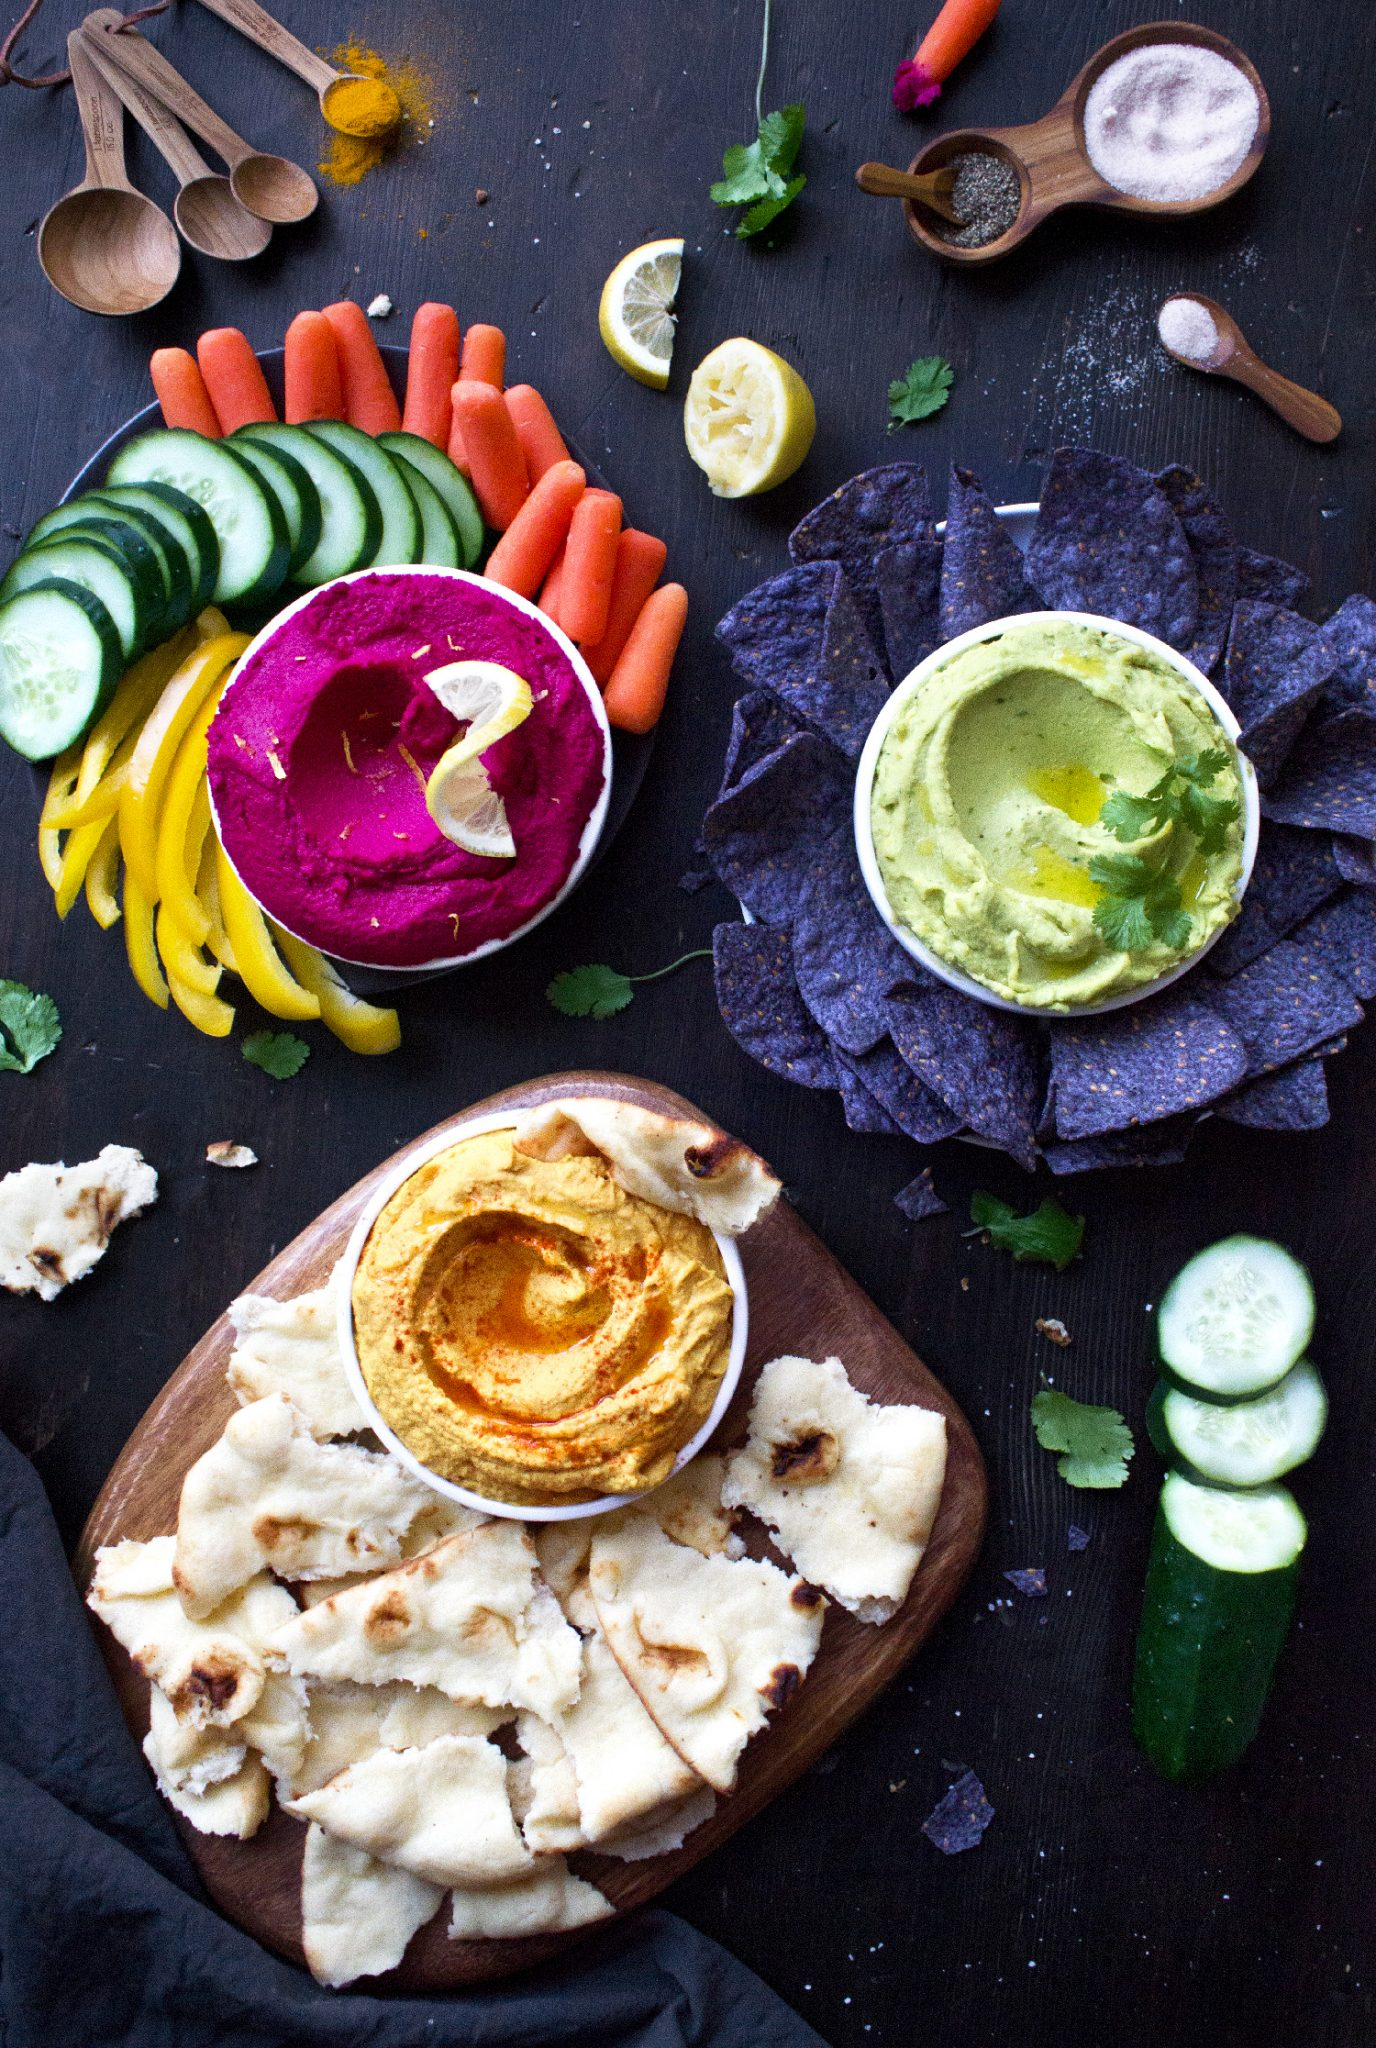 Beet, Guacamole, and Curry Hummus. Gluten and Dairy Free, Vegan-Friendly.